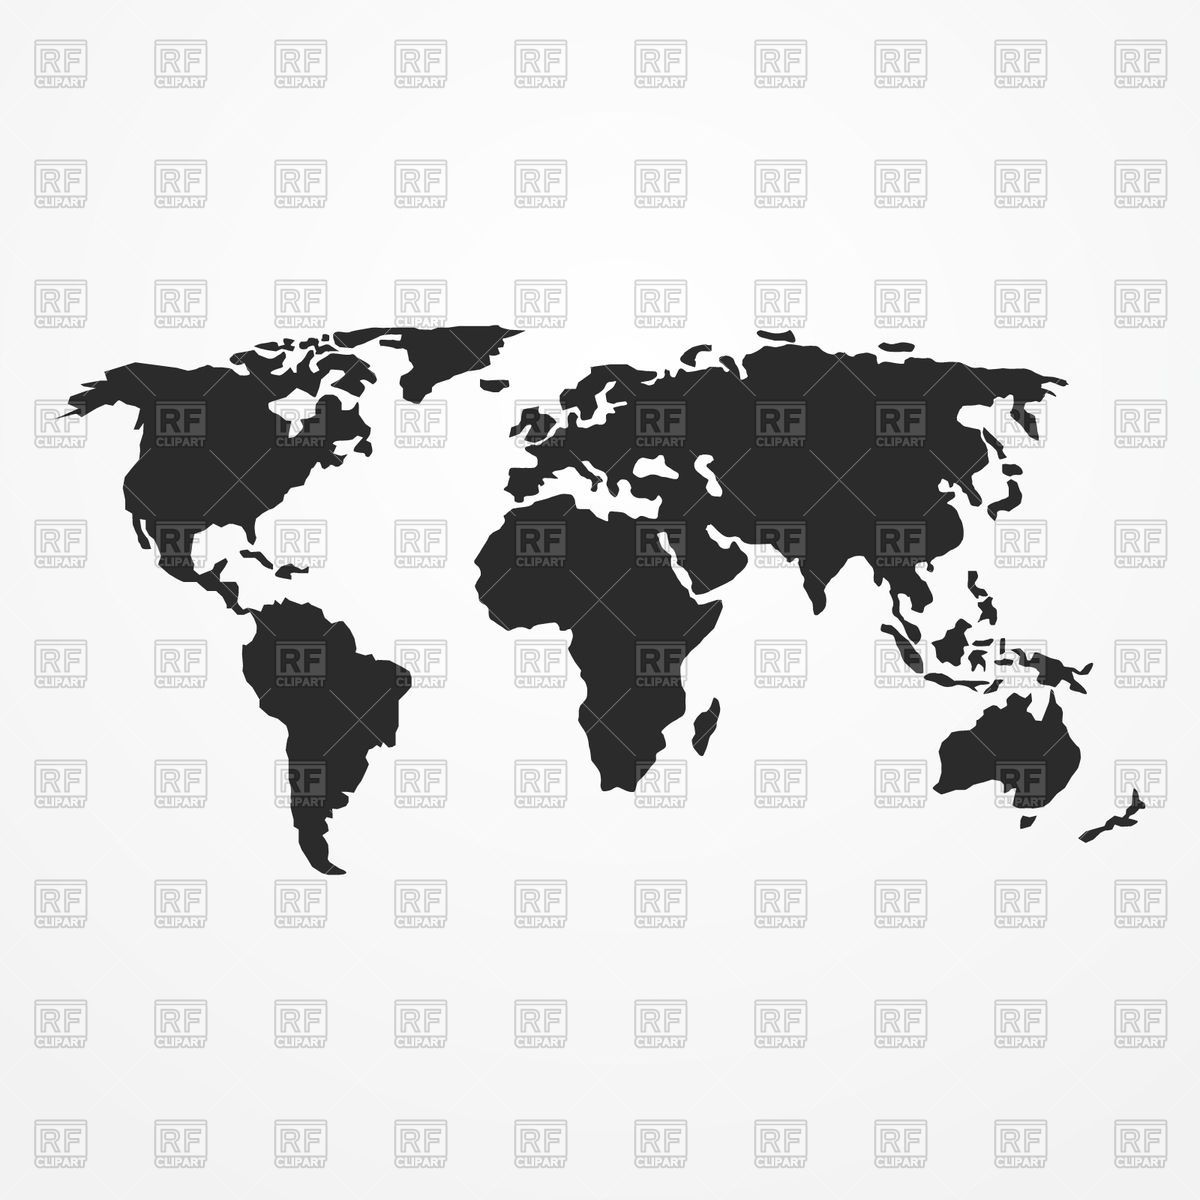 Download free image world map silhouette 77668 silhouettes download free image world map silhouette 77668 silhouettes outlines world map gumiabroncs Image collections